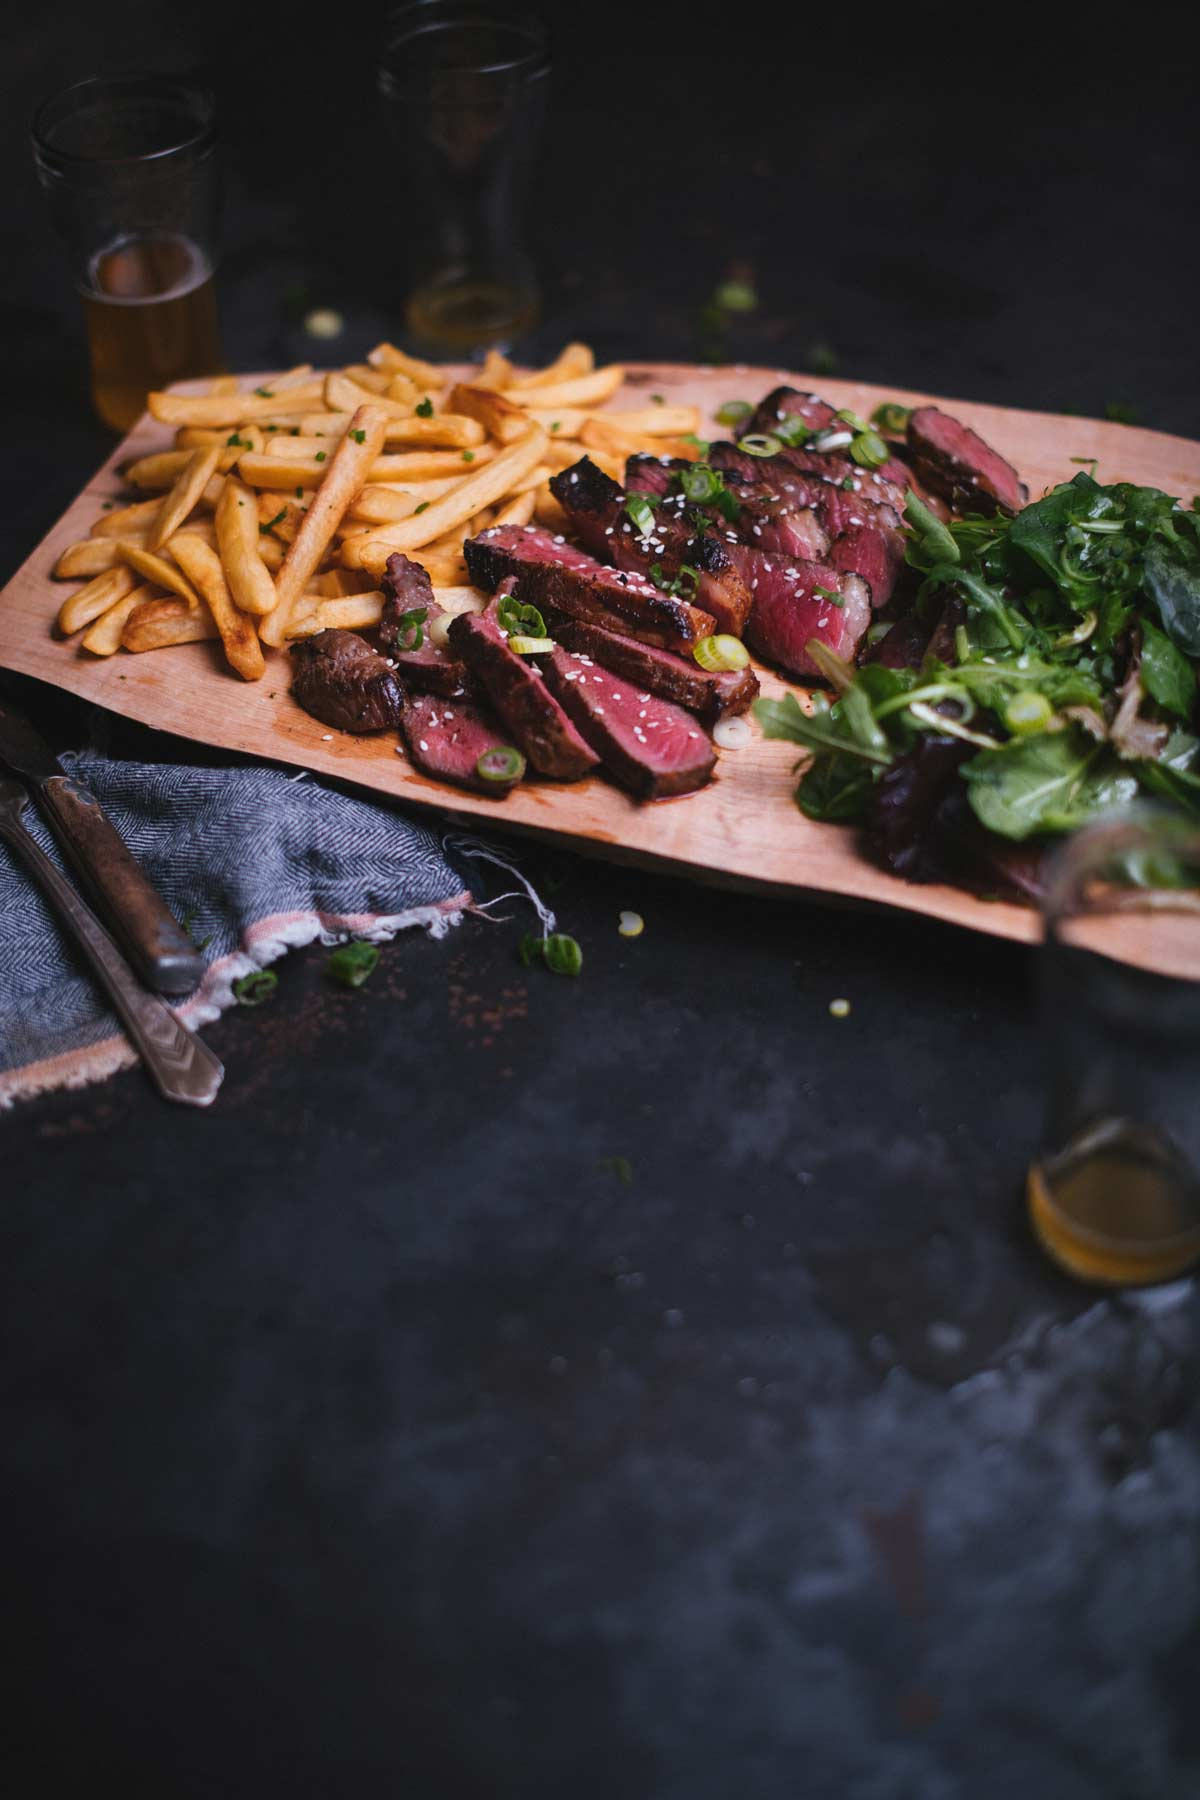 sliced medium rare steak, french fries, green salad